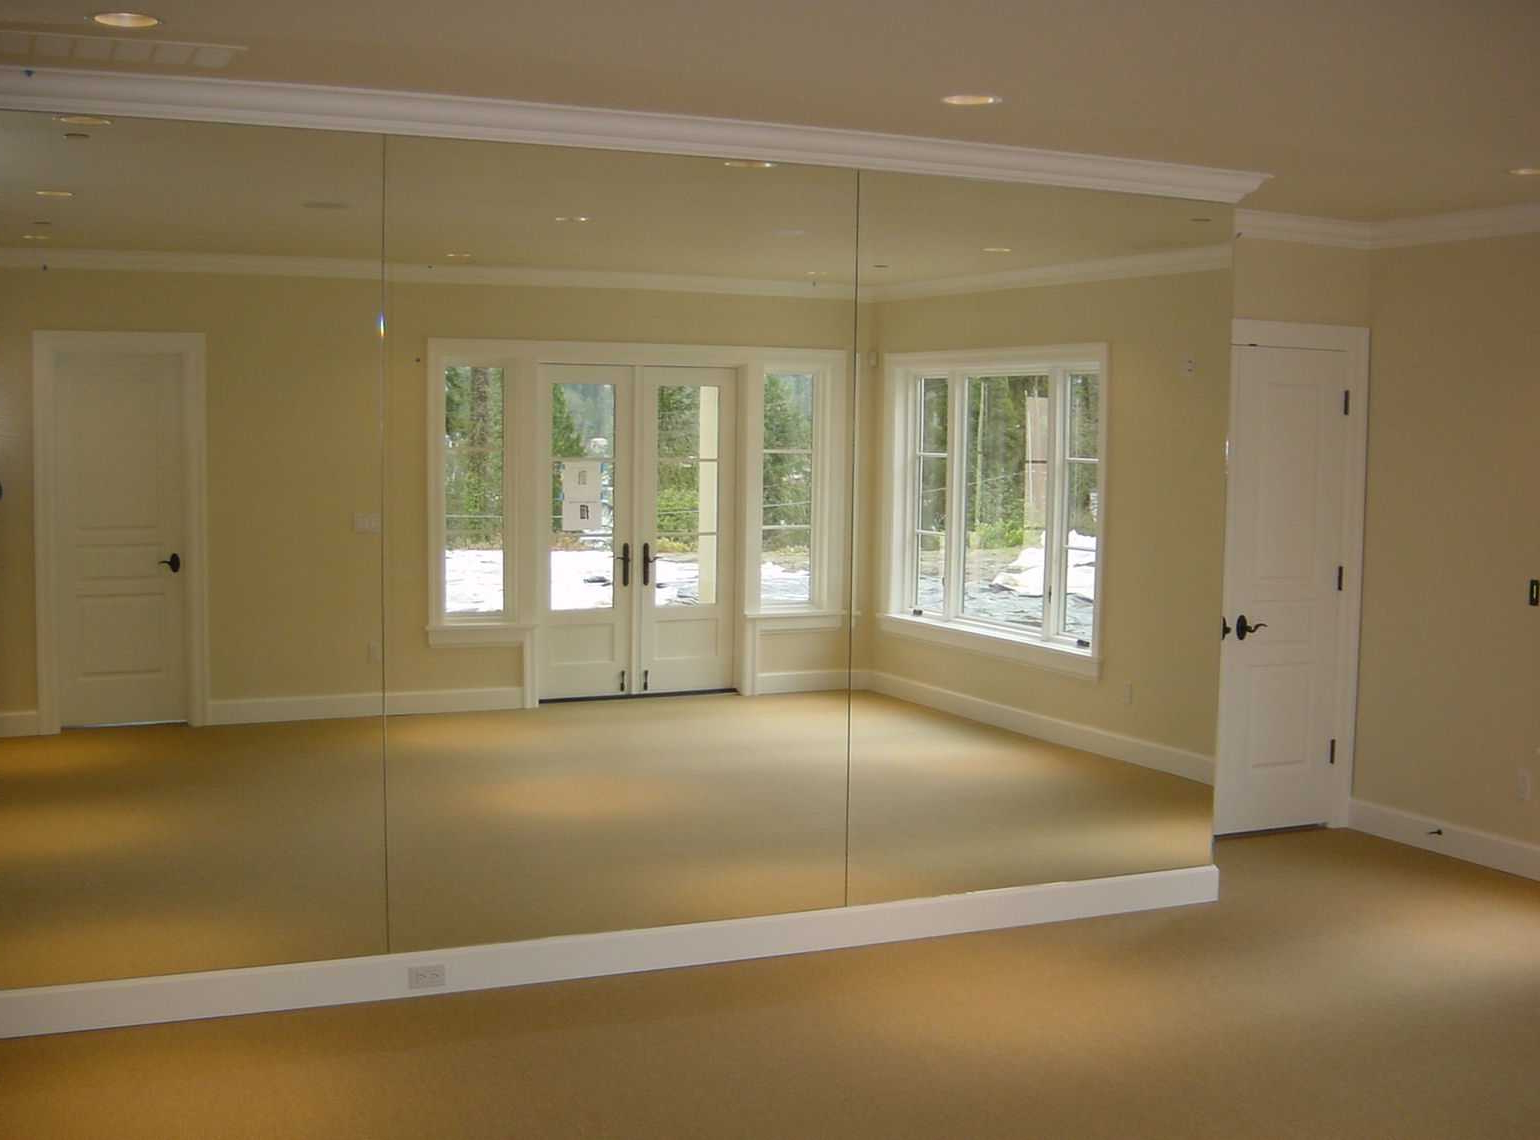 Widely Used Gym Full Wall Mirrors For Mirror: Gym Mirrors Help You Check Your Posture And Positioning (View 4 of 20)